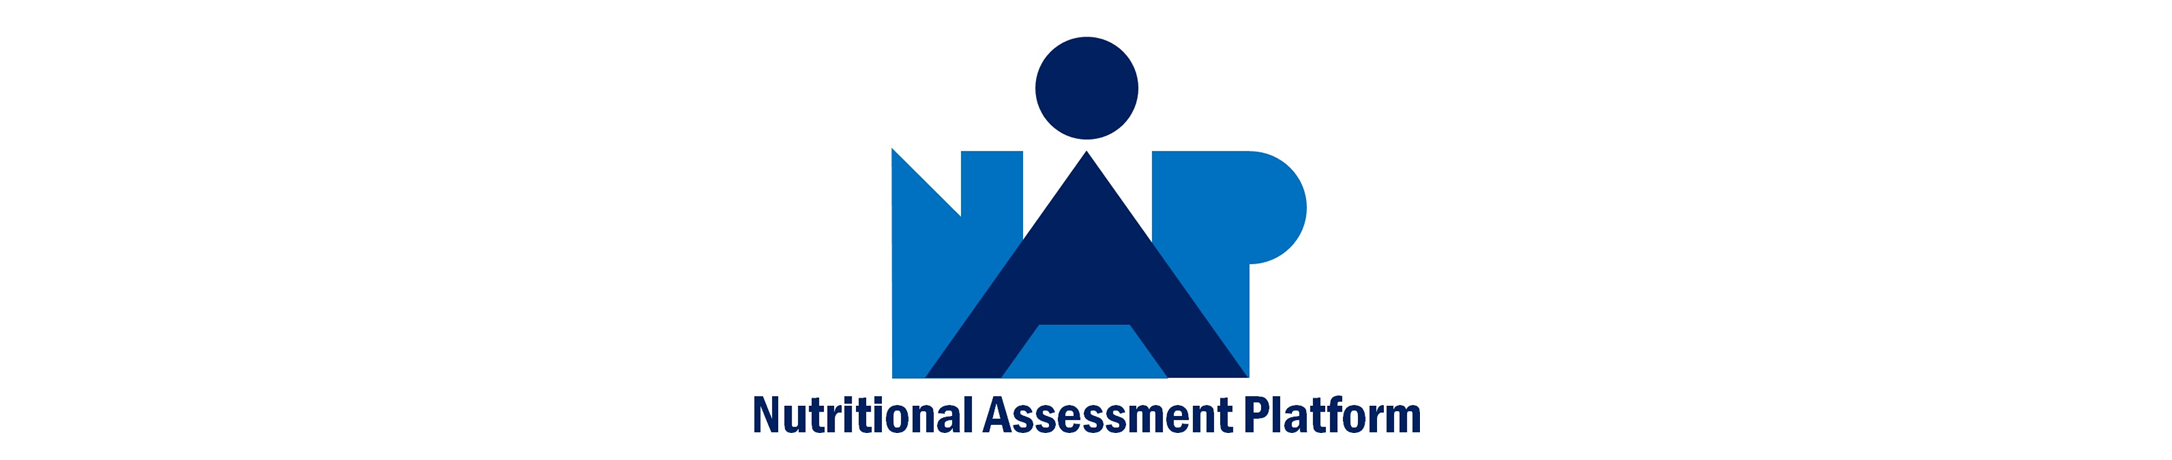 Nutritional Assessment Platform